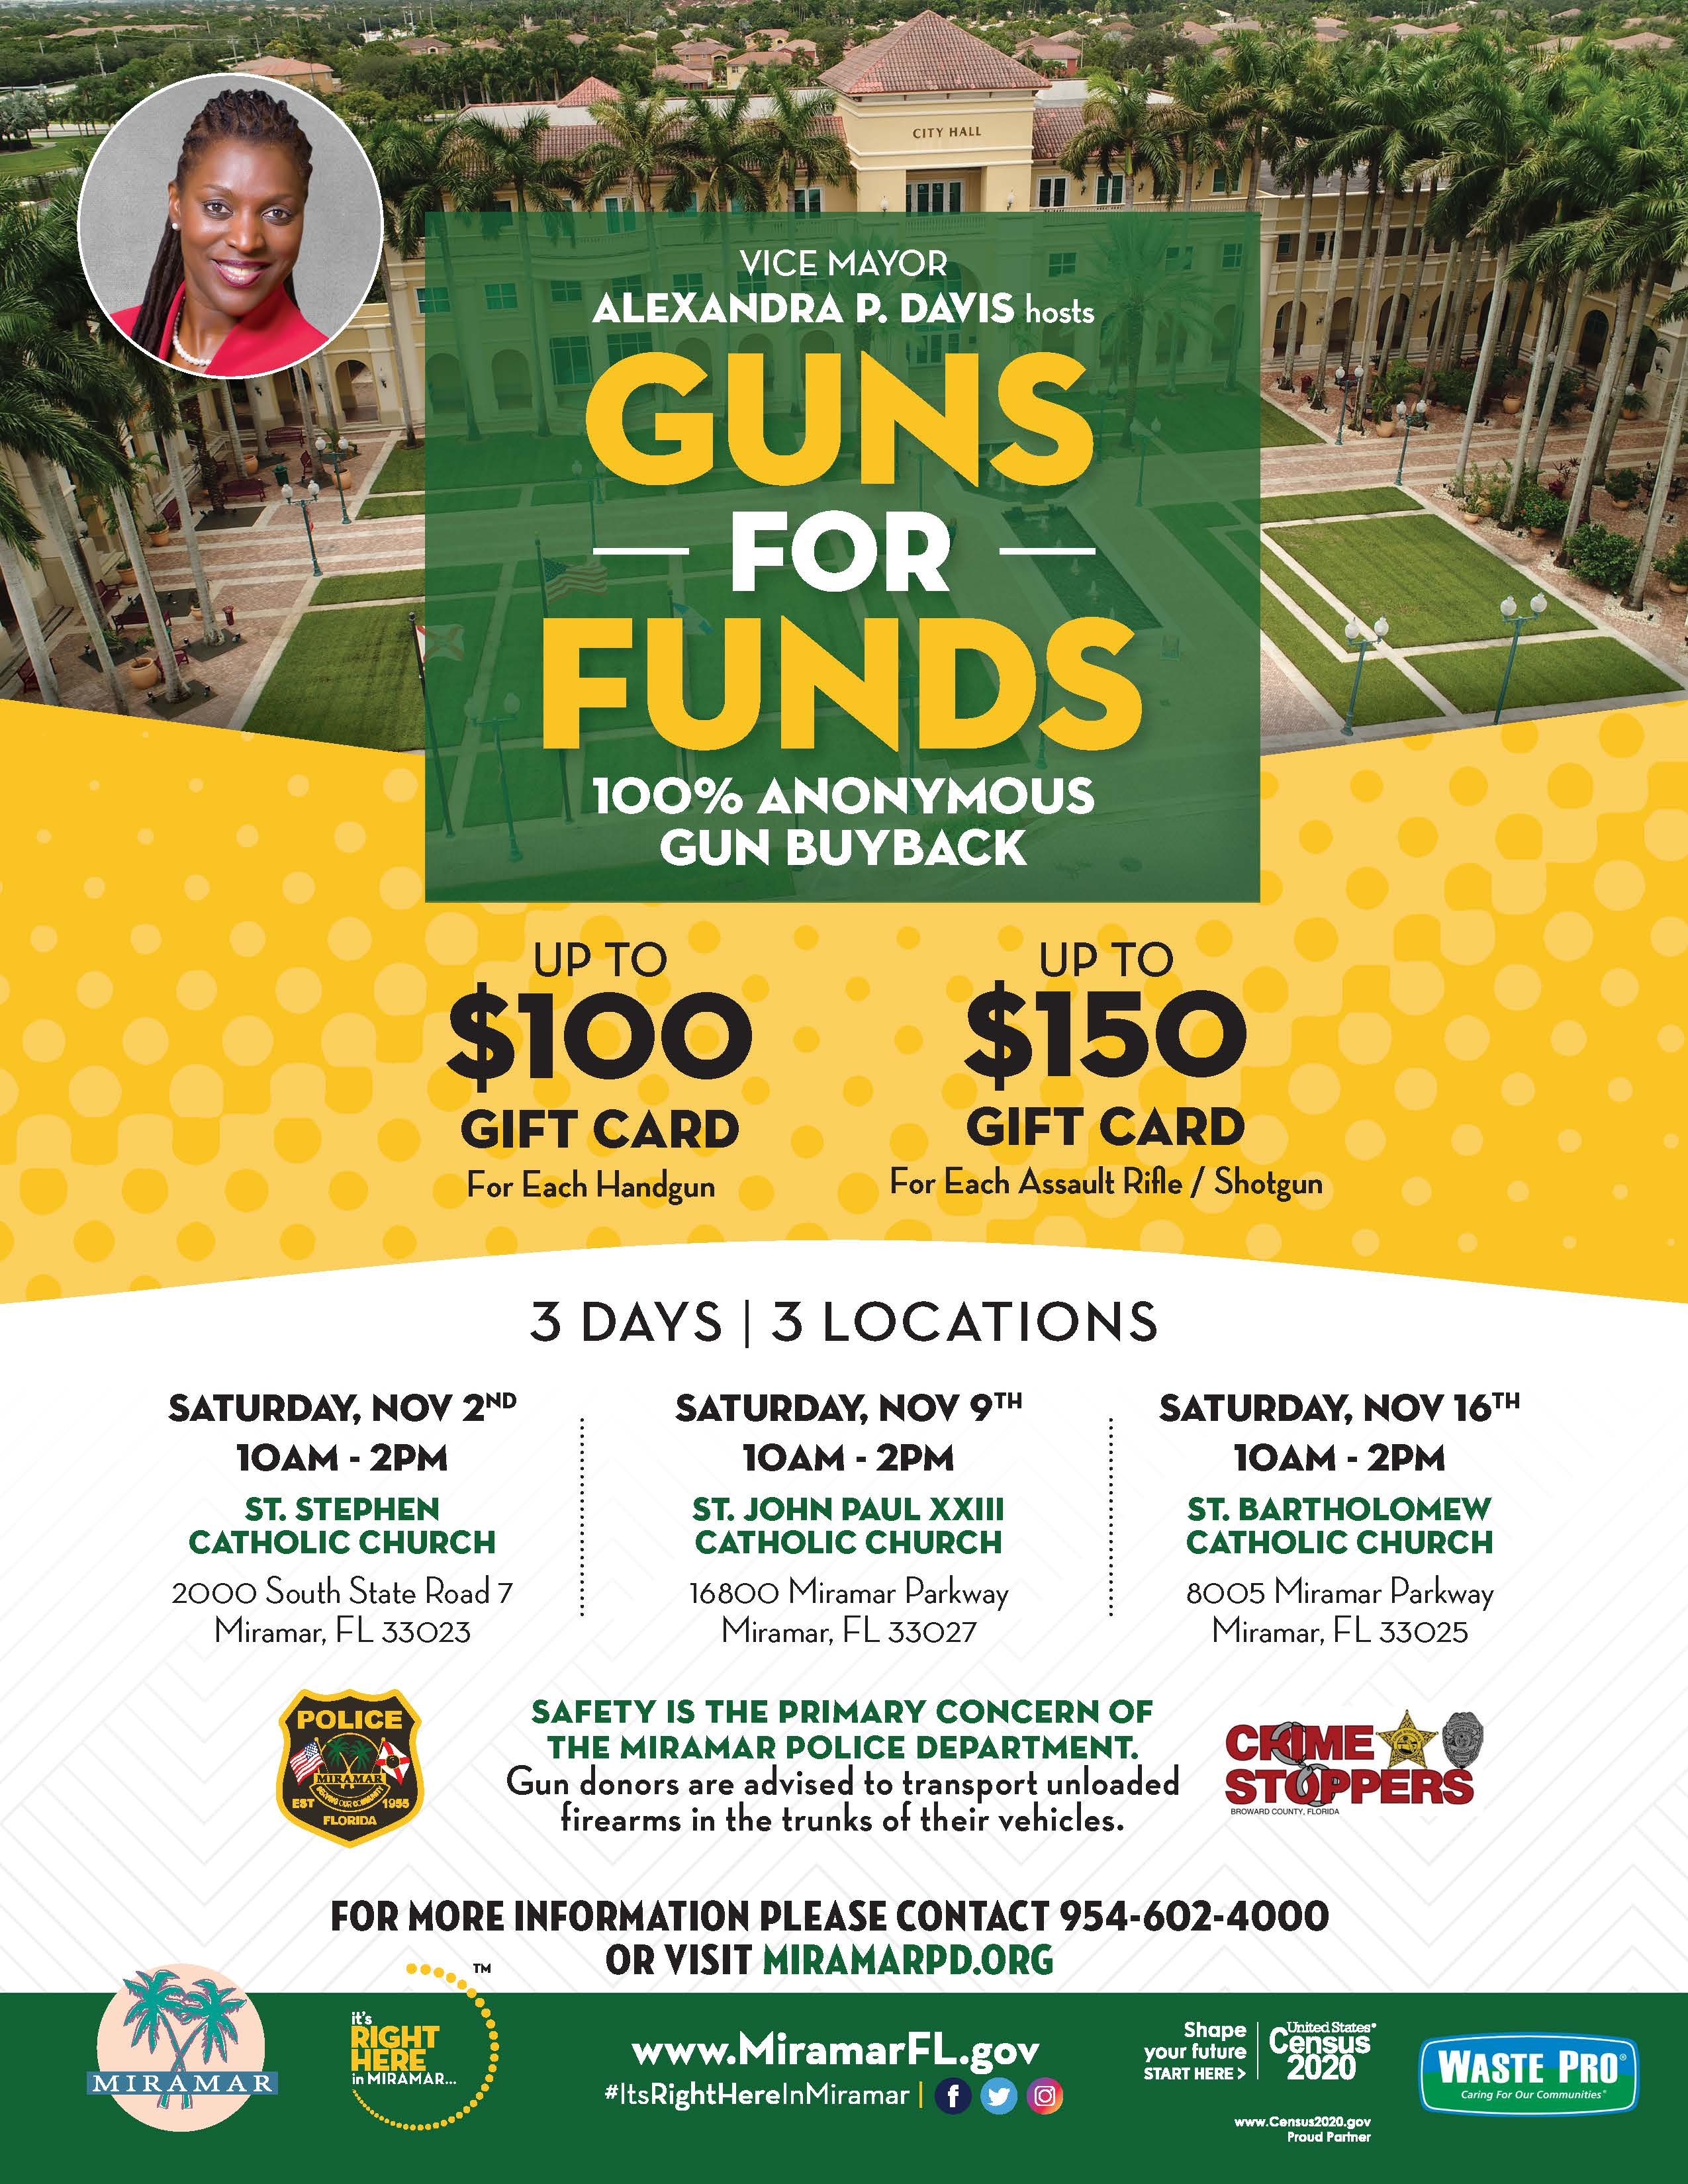 VM-GunsForFunds-Flyer-V07